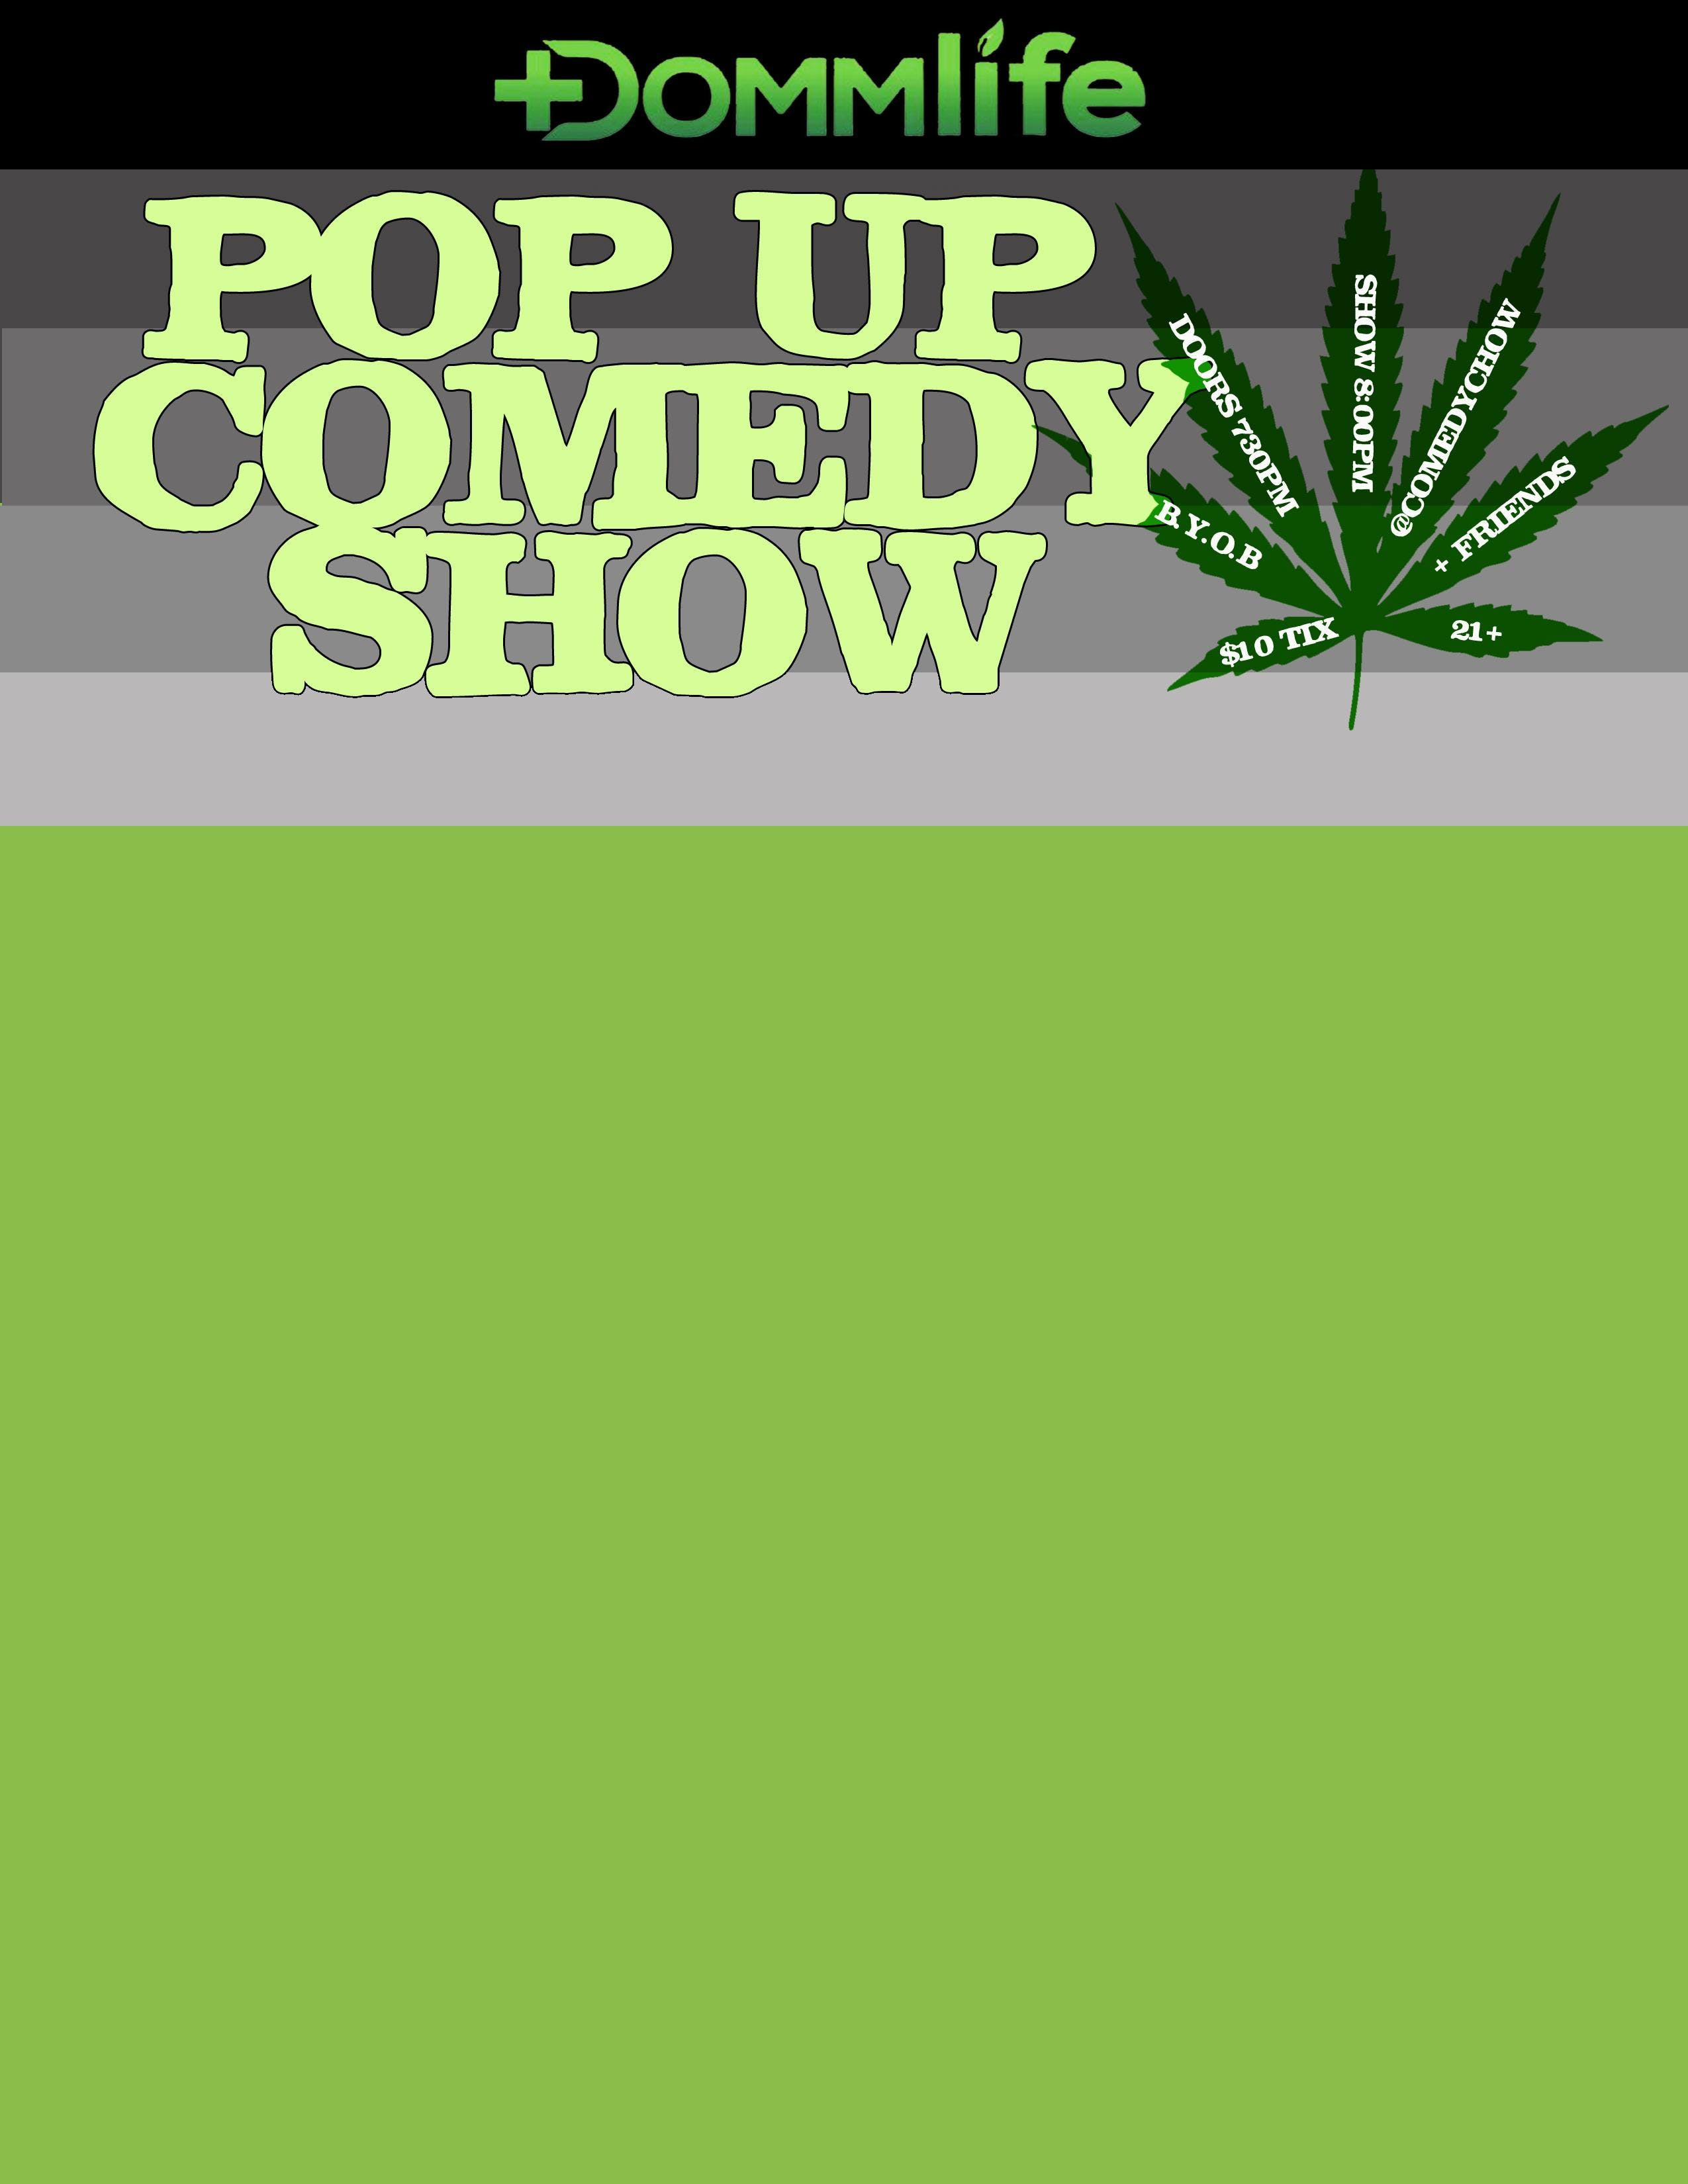 Comedy Chow presents : DOMMlife Sponsored Comedy Show 1 NIGHT ONLY